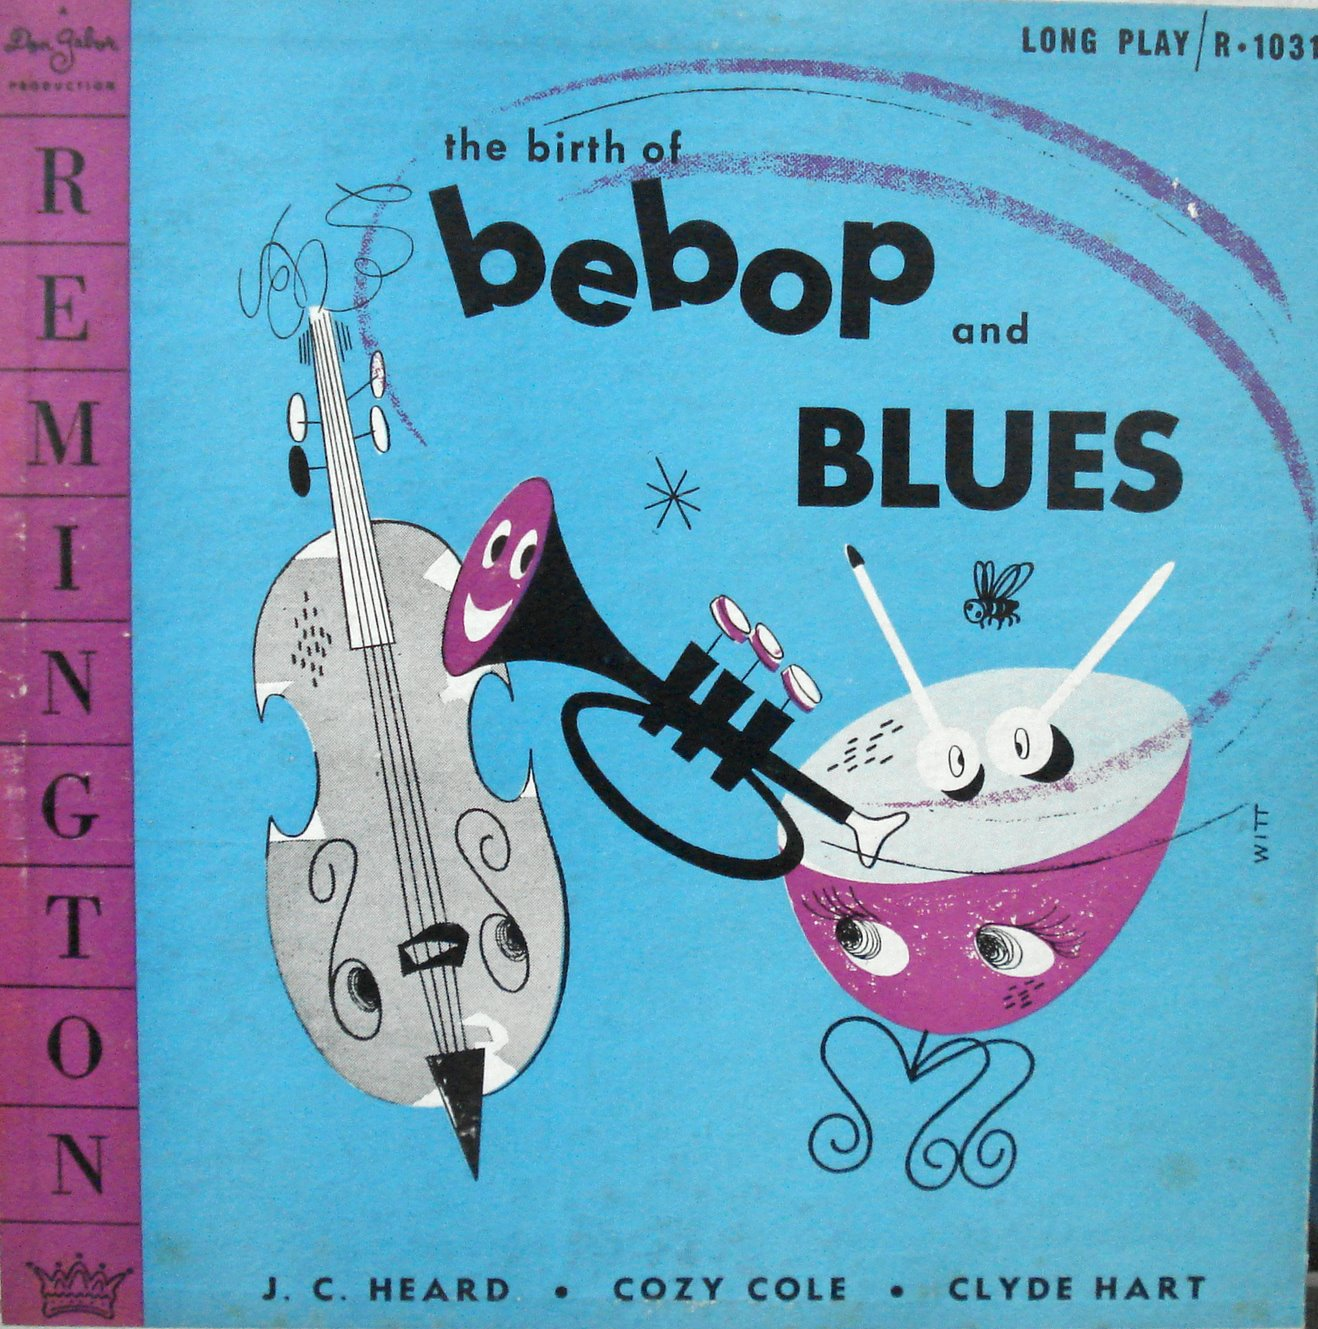 Album cover of the week: The Birth of Bebop and Blues